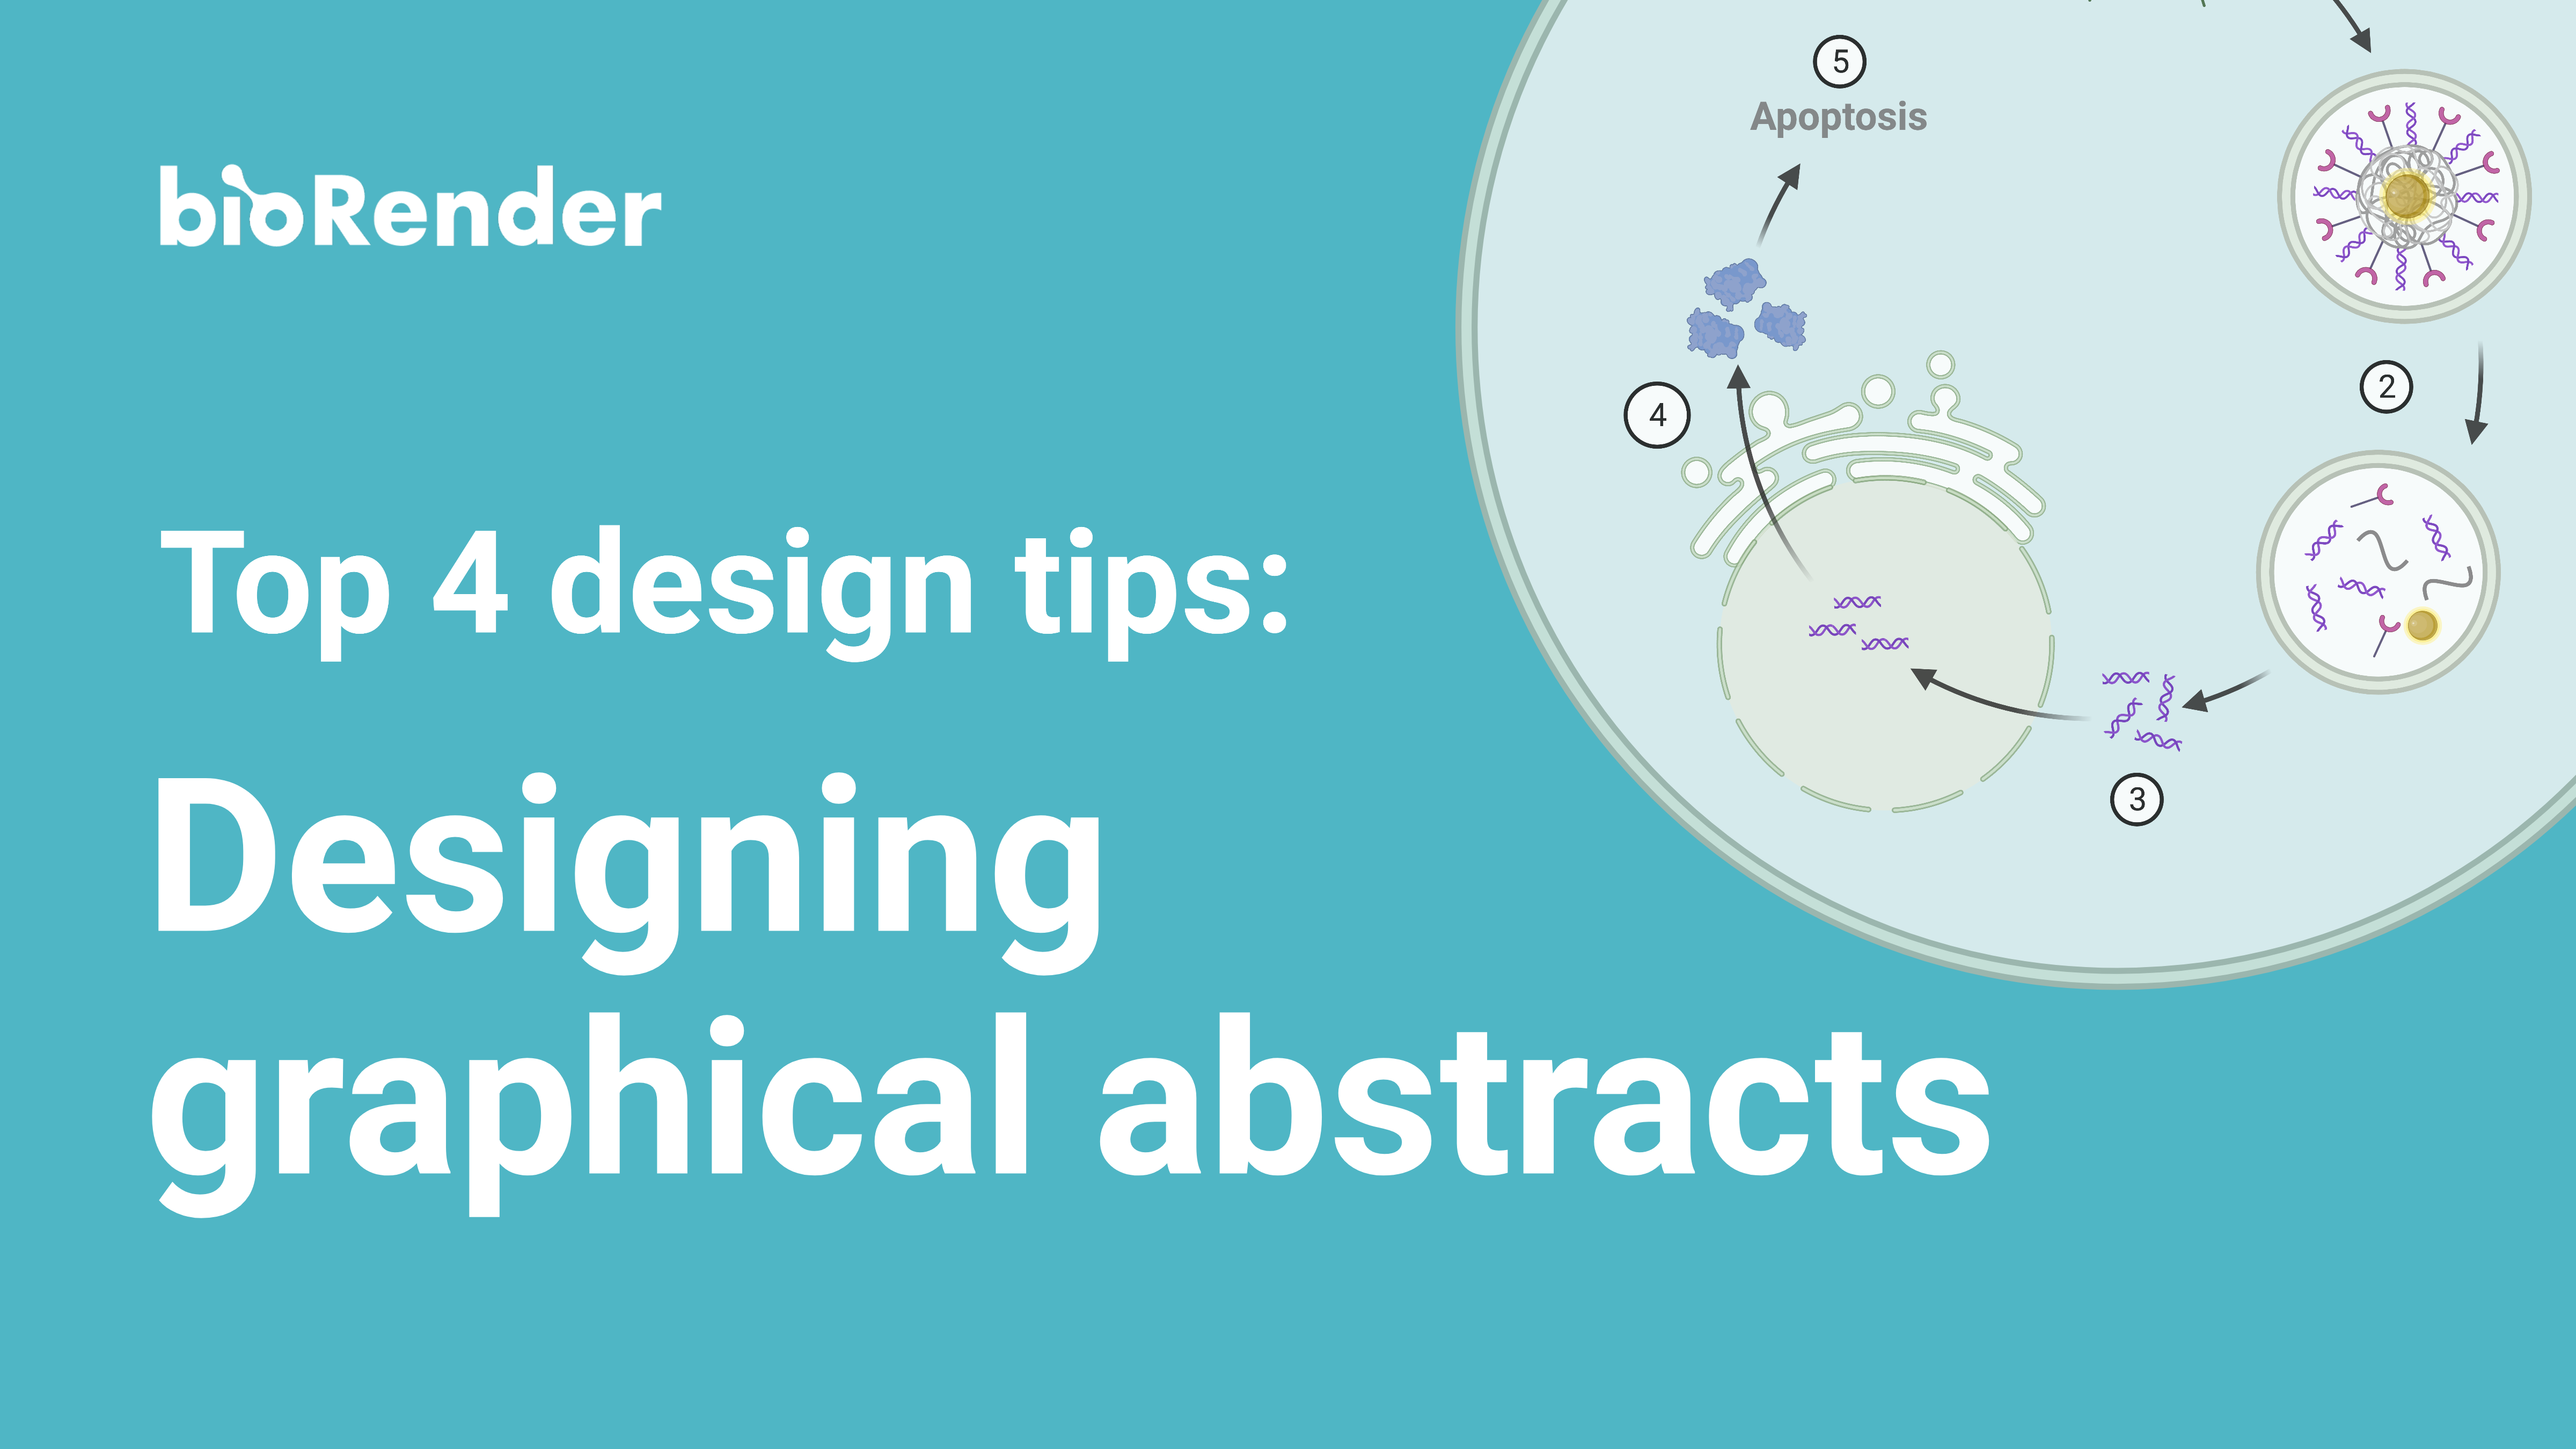 Designing graphical abstracts